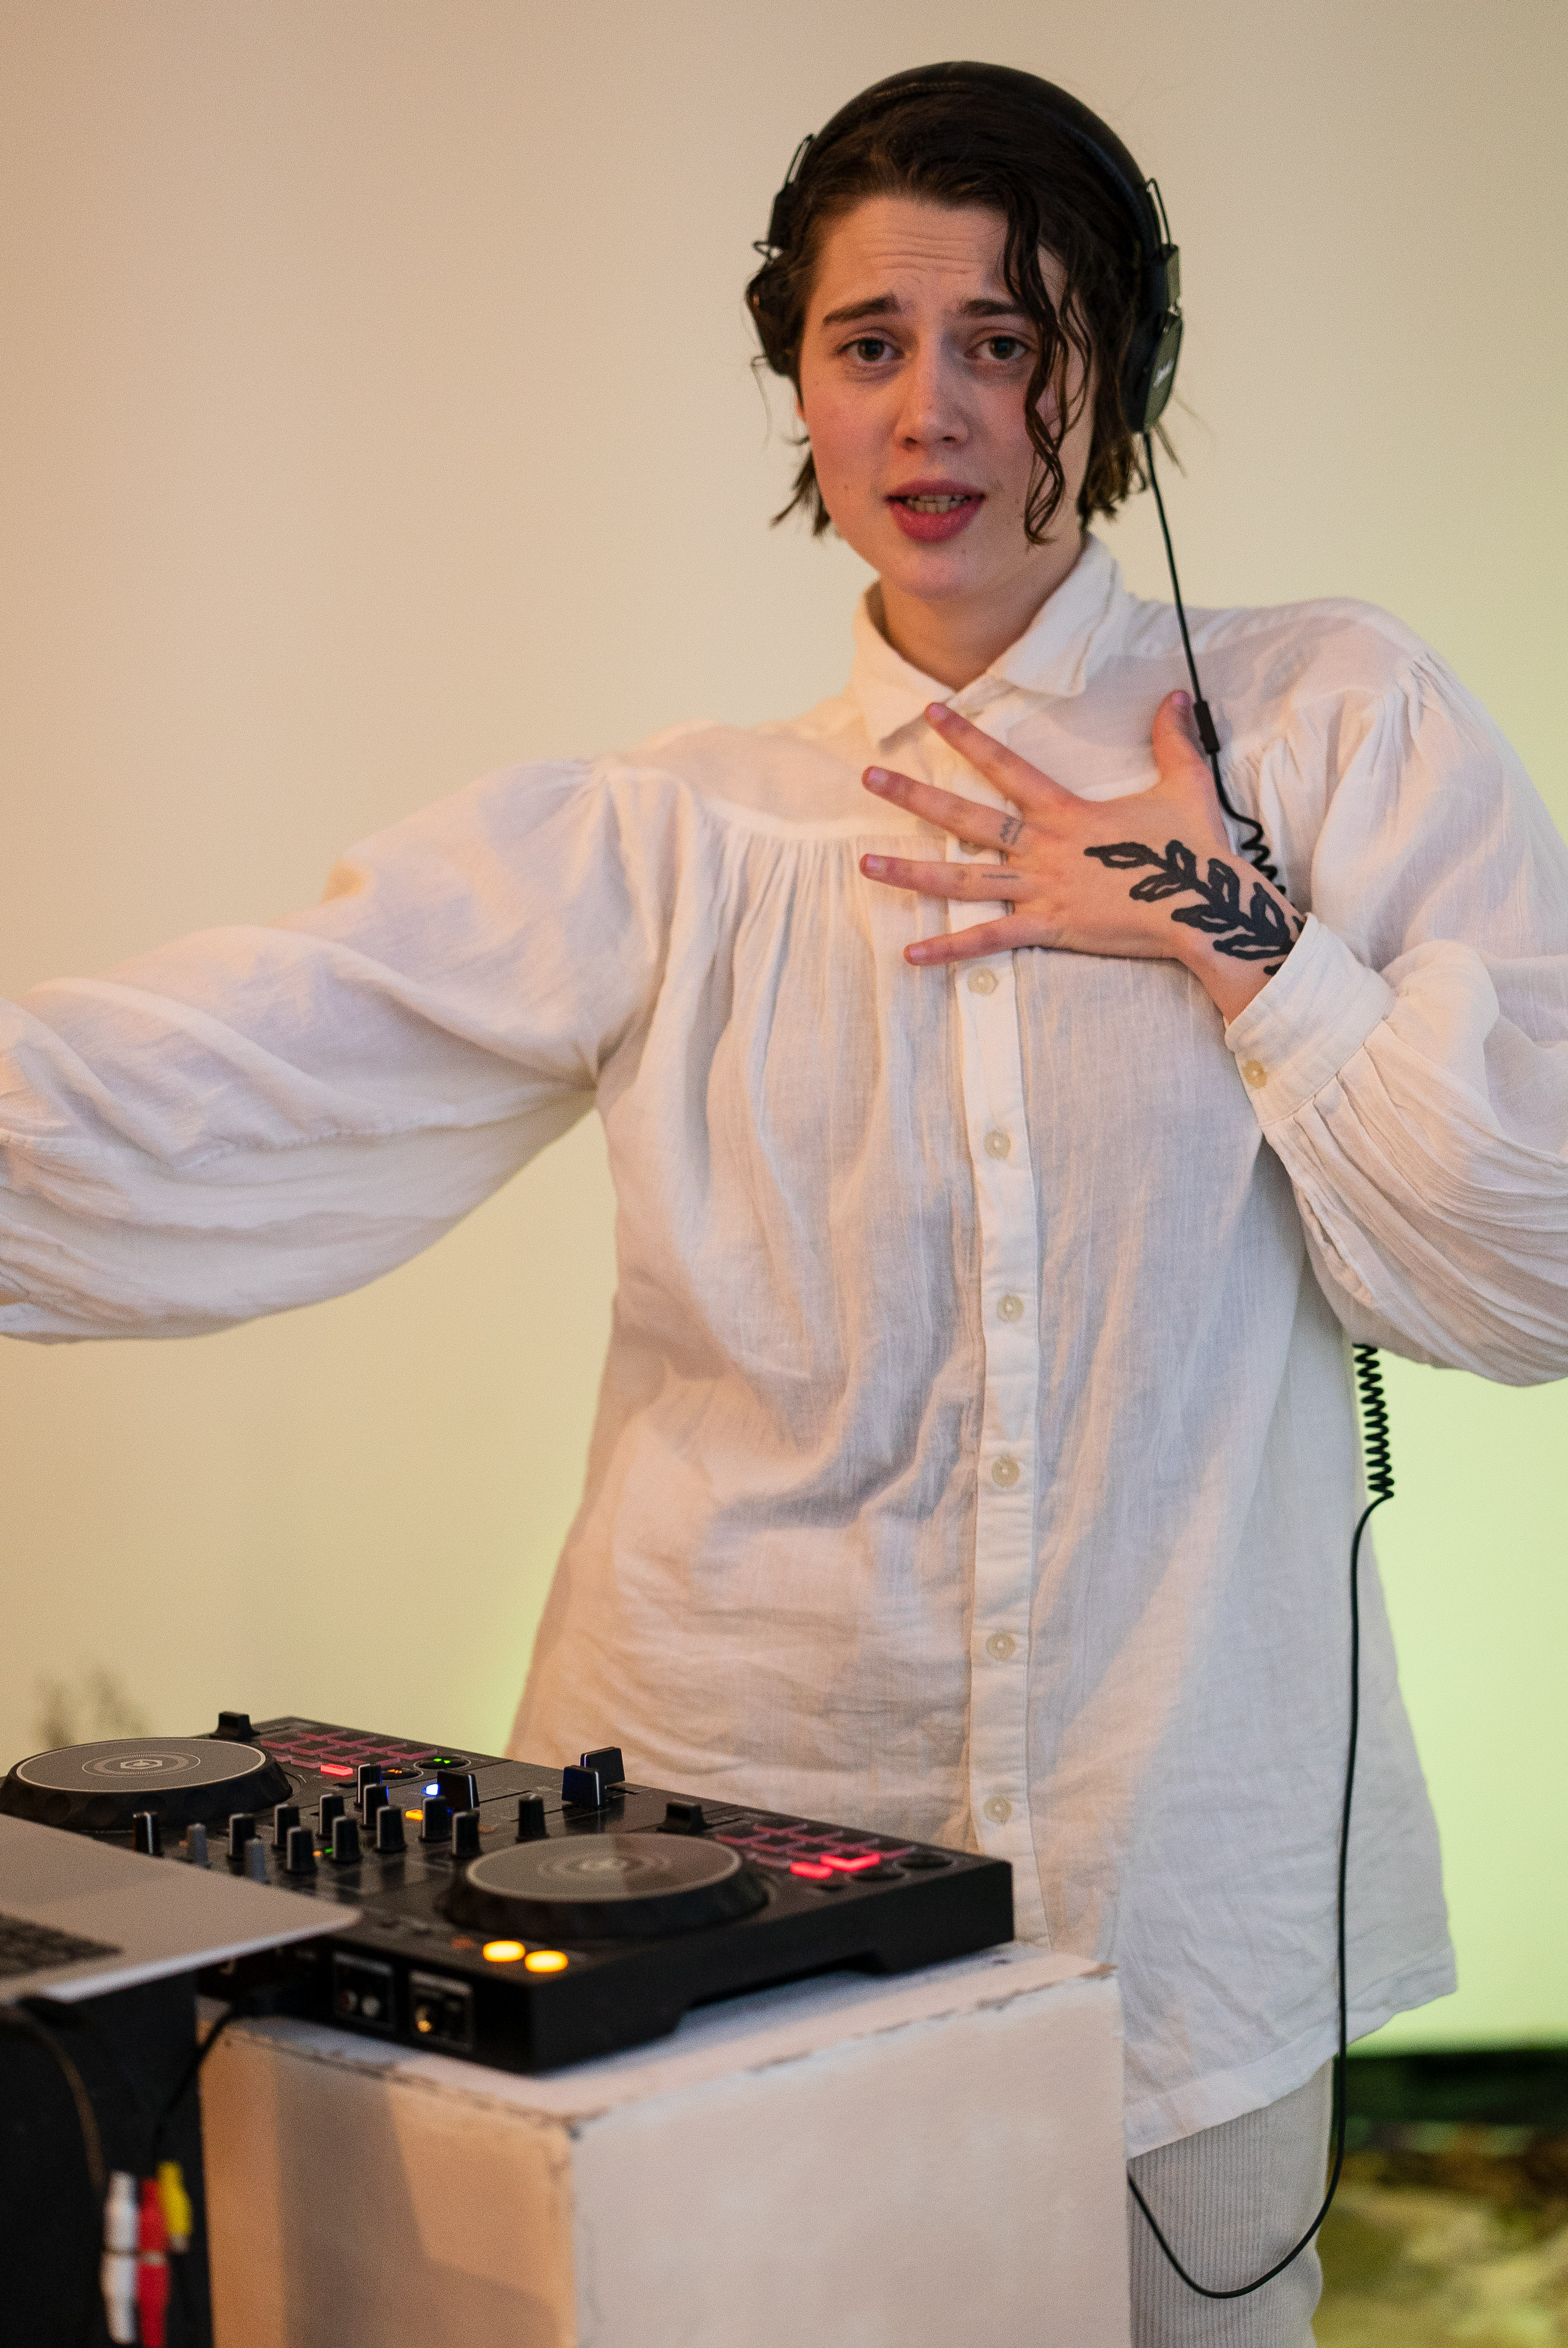 The photo is a medium shot of a person wearing white clothes and headphones dancing in front of a dj table. With the left hand on their chest they are looking into the camera, their mouth looks like as if they were singing.